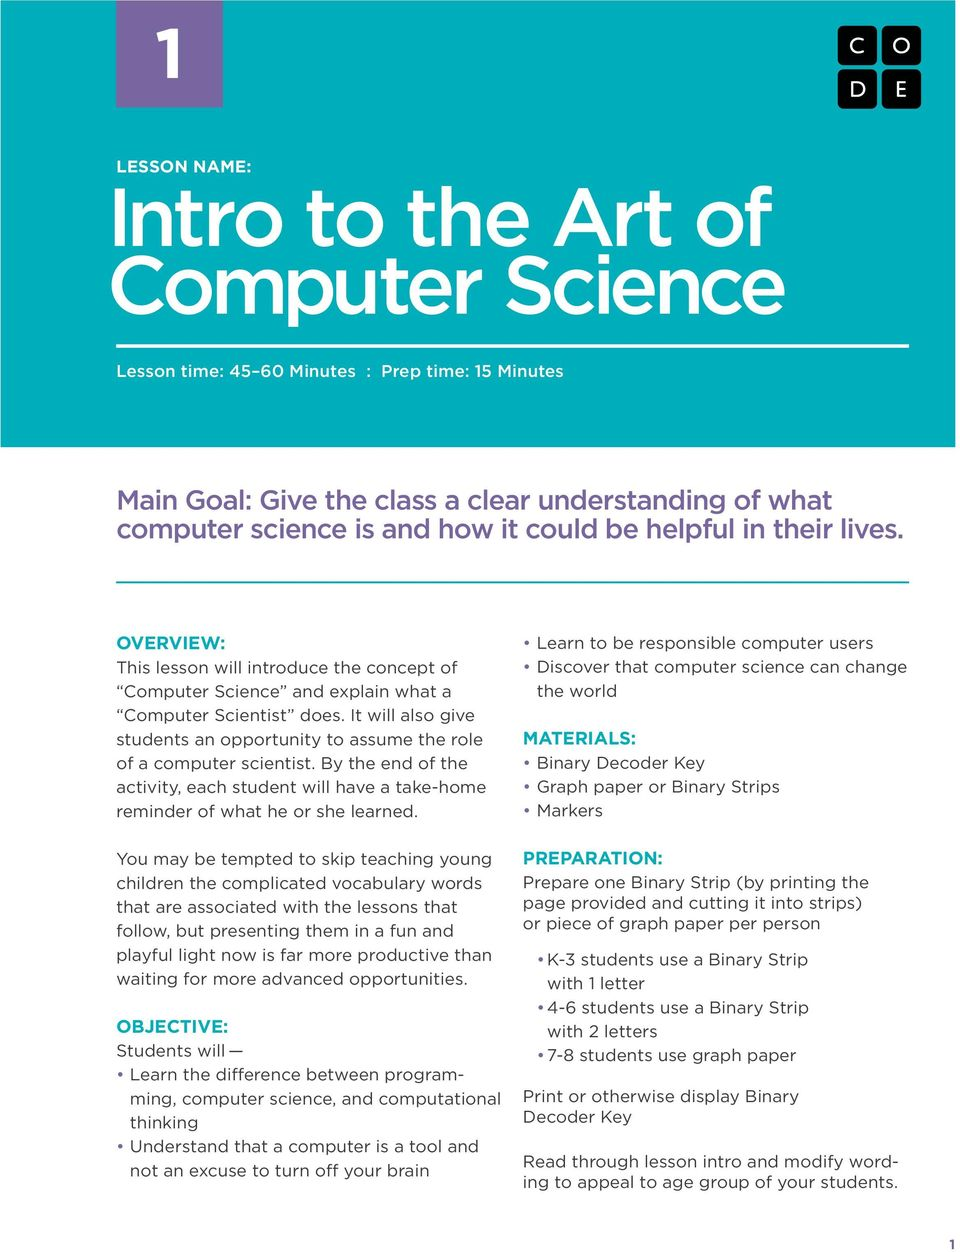 It will also give students an opportunity to assume the role of a computer scientist. By the end of the activity, each student will have a take-home reminder of what he or she learned.